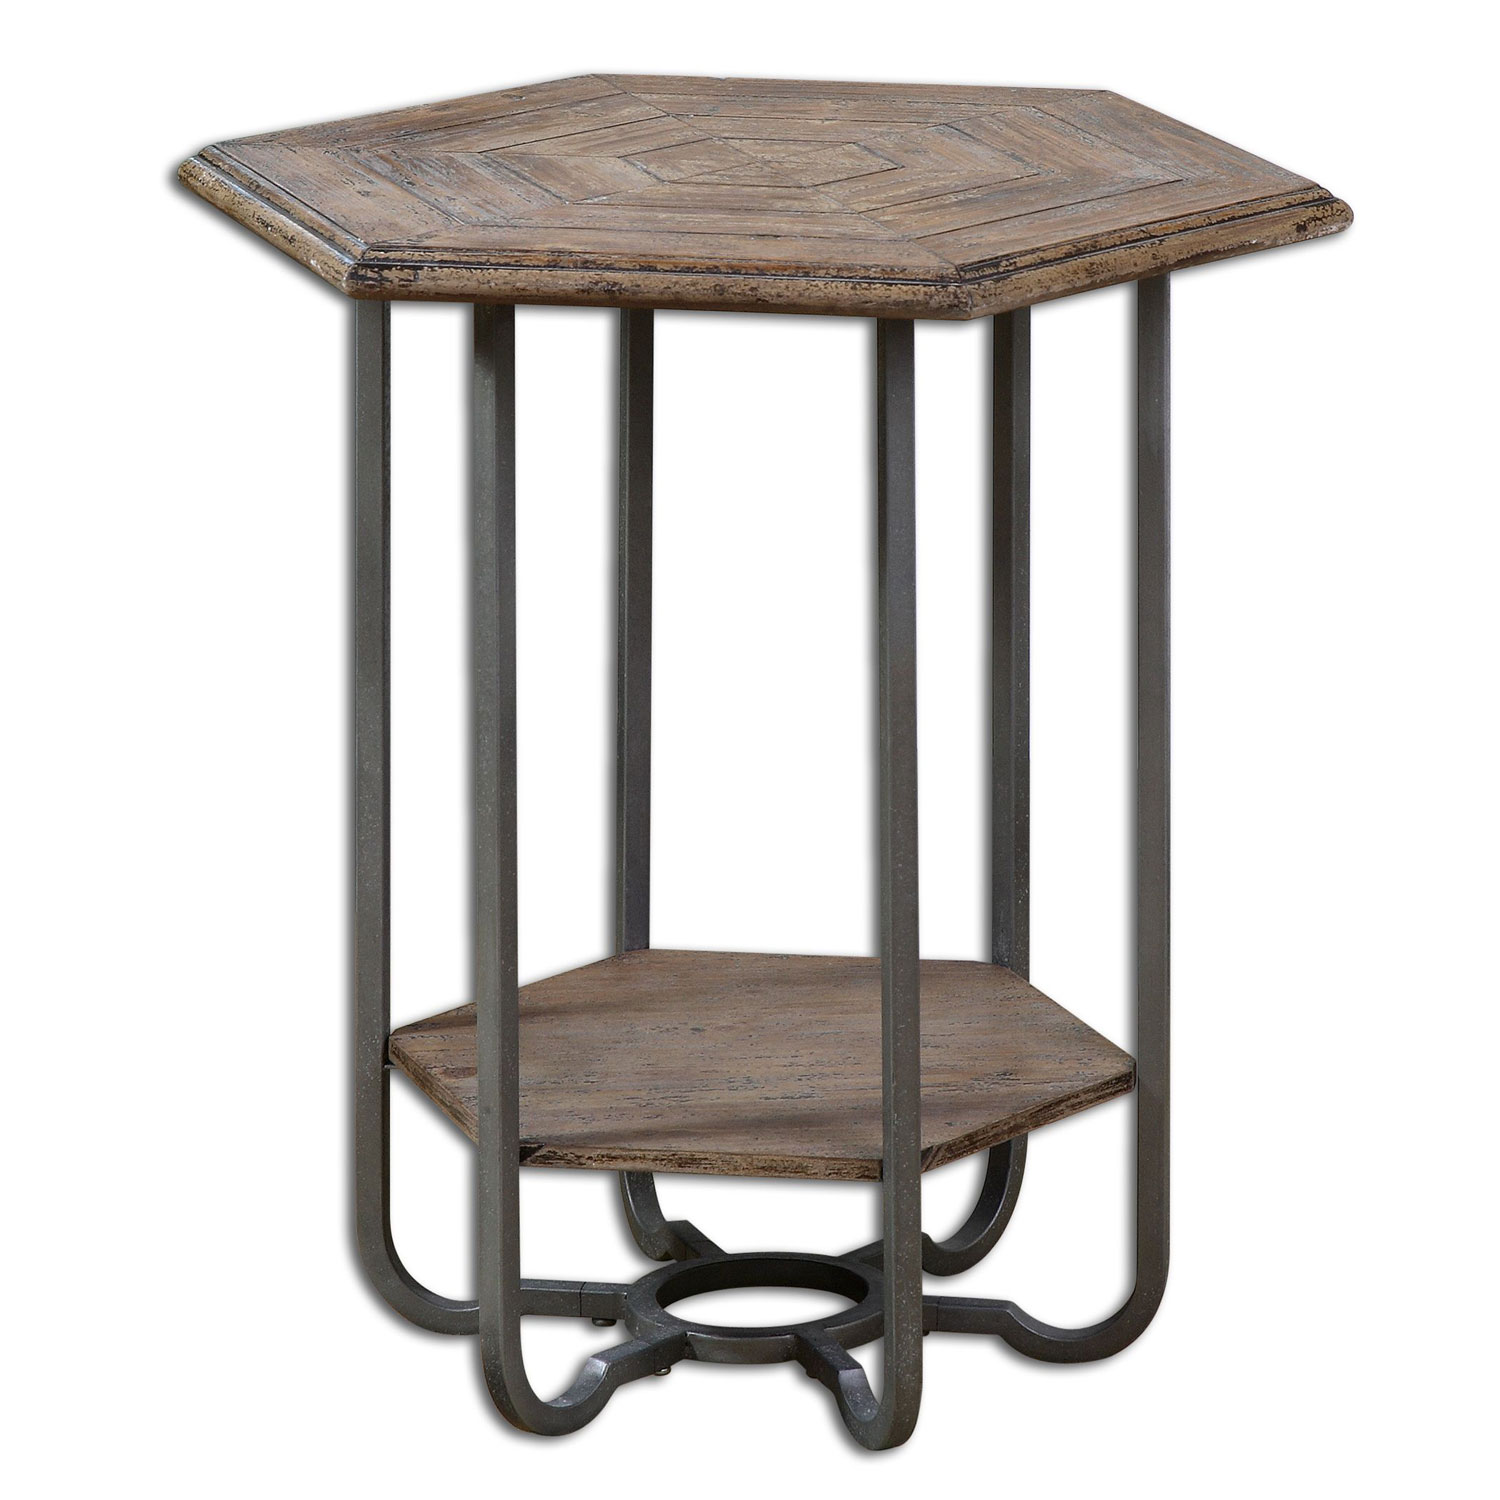 uttermost son light tan chippy wooden accent table wood hover zoom retro modern lighting laptop round patio chair dale tiffany dragonfly lamp shade transition pieces for flooring